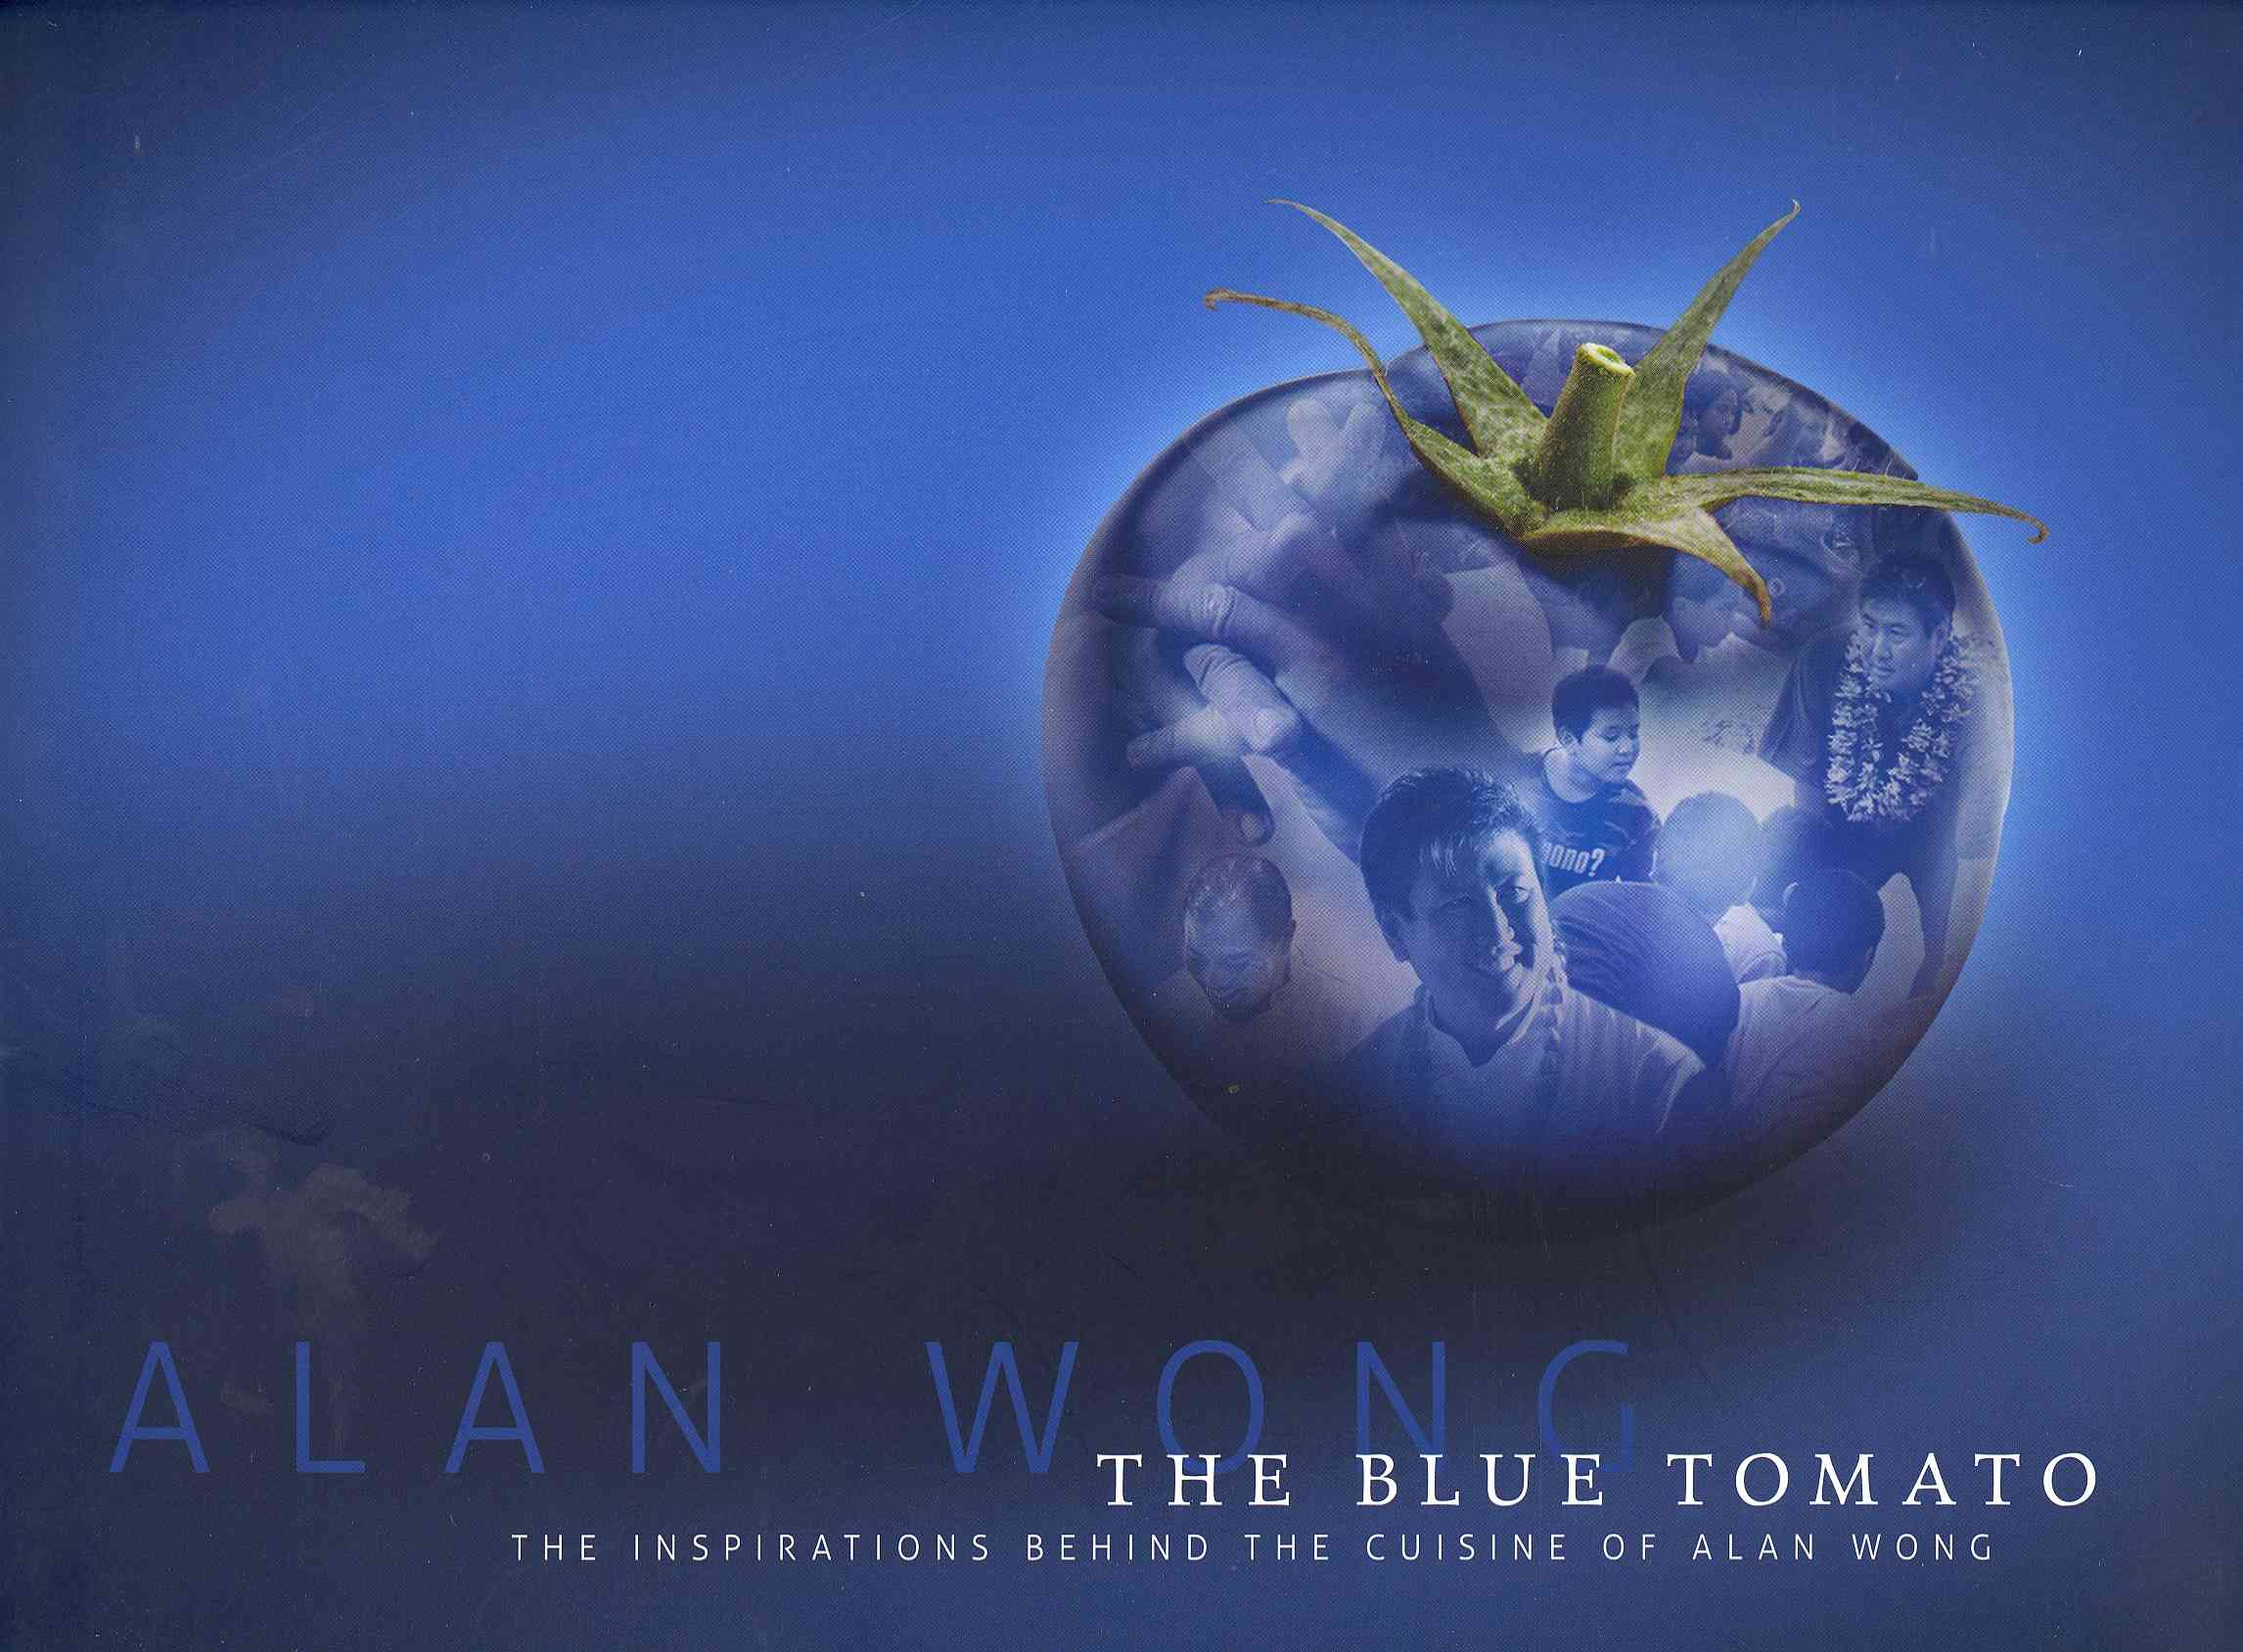 The Blue Tomato: The Inspirations Behind the Cuisine of Alan Wong (Hardcover)